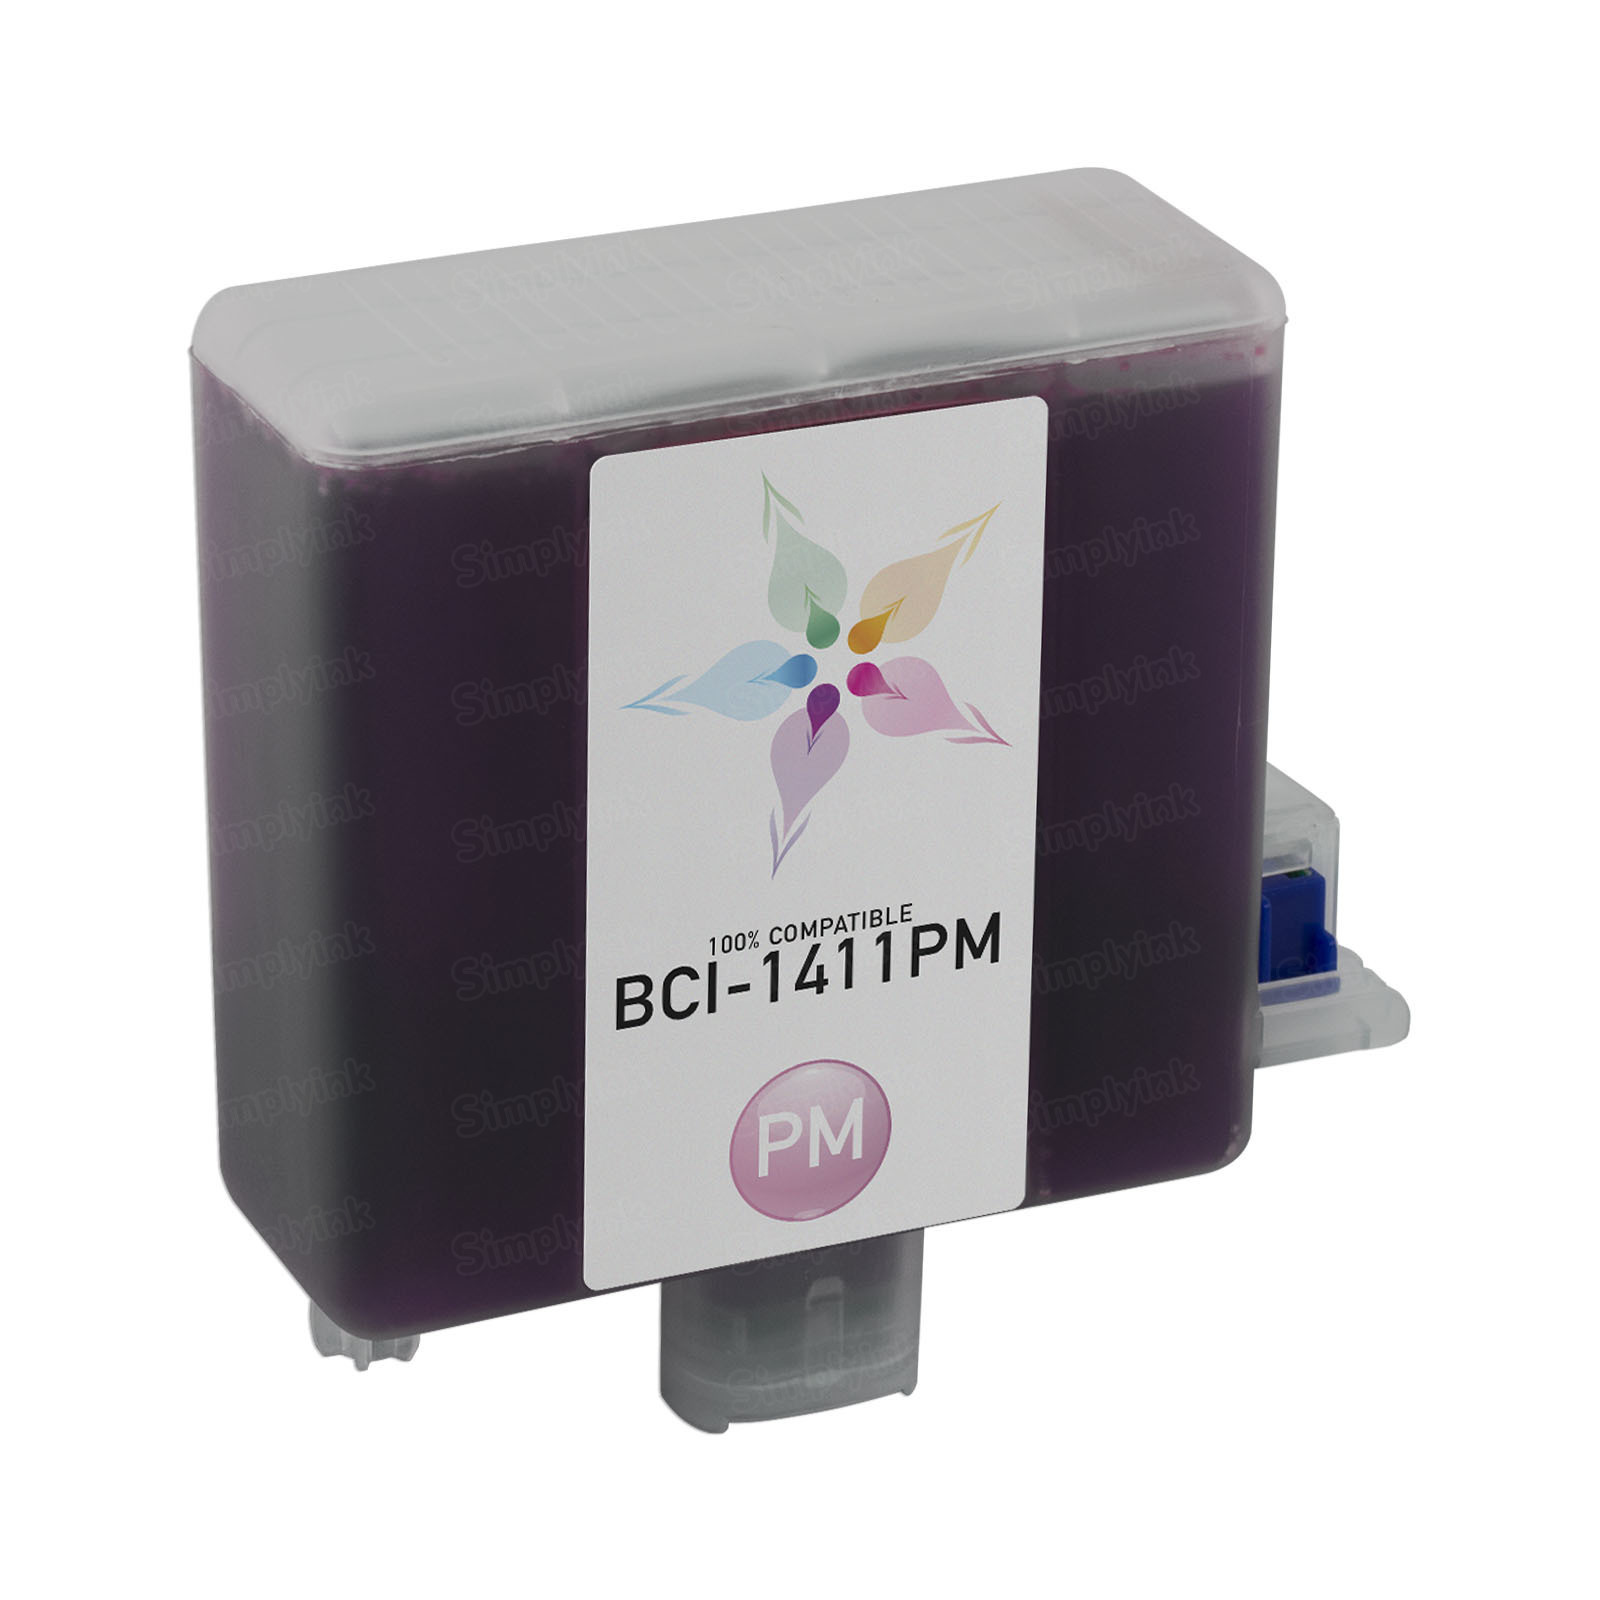 Canon Compatible BCI-1411PM Photo Magenta Ink for imagePROGRAF W7200 & W8200